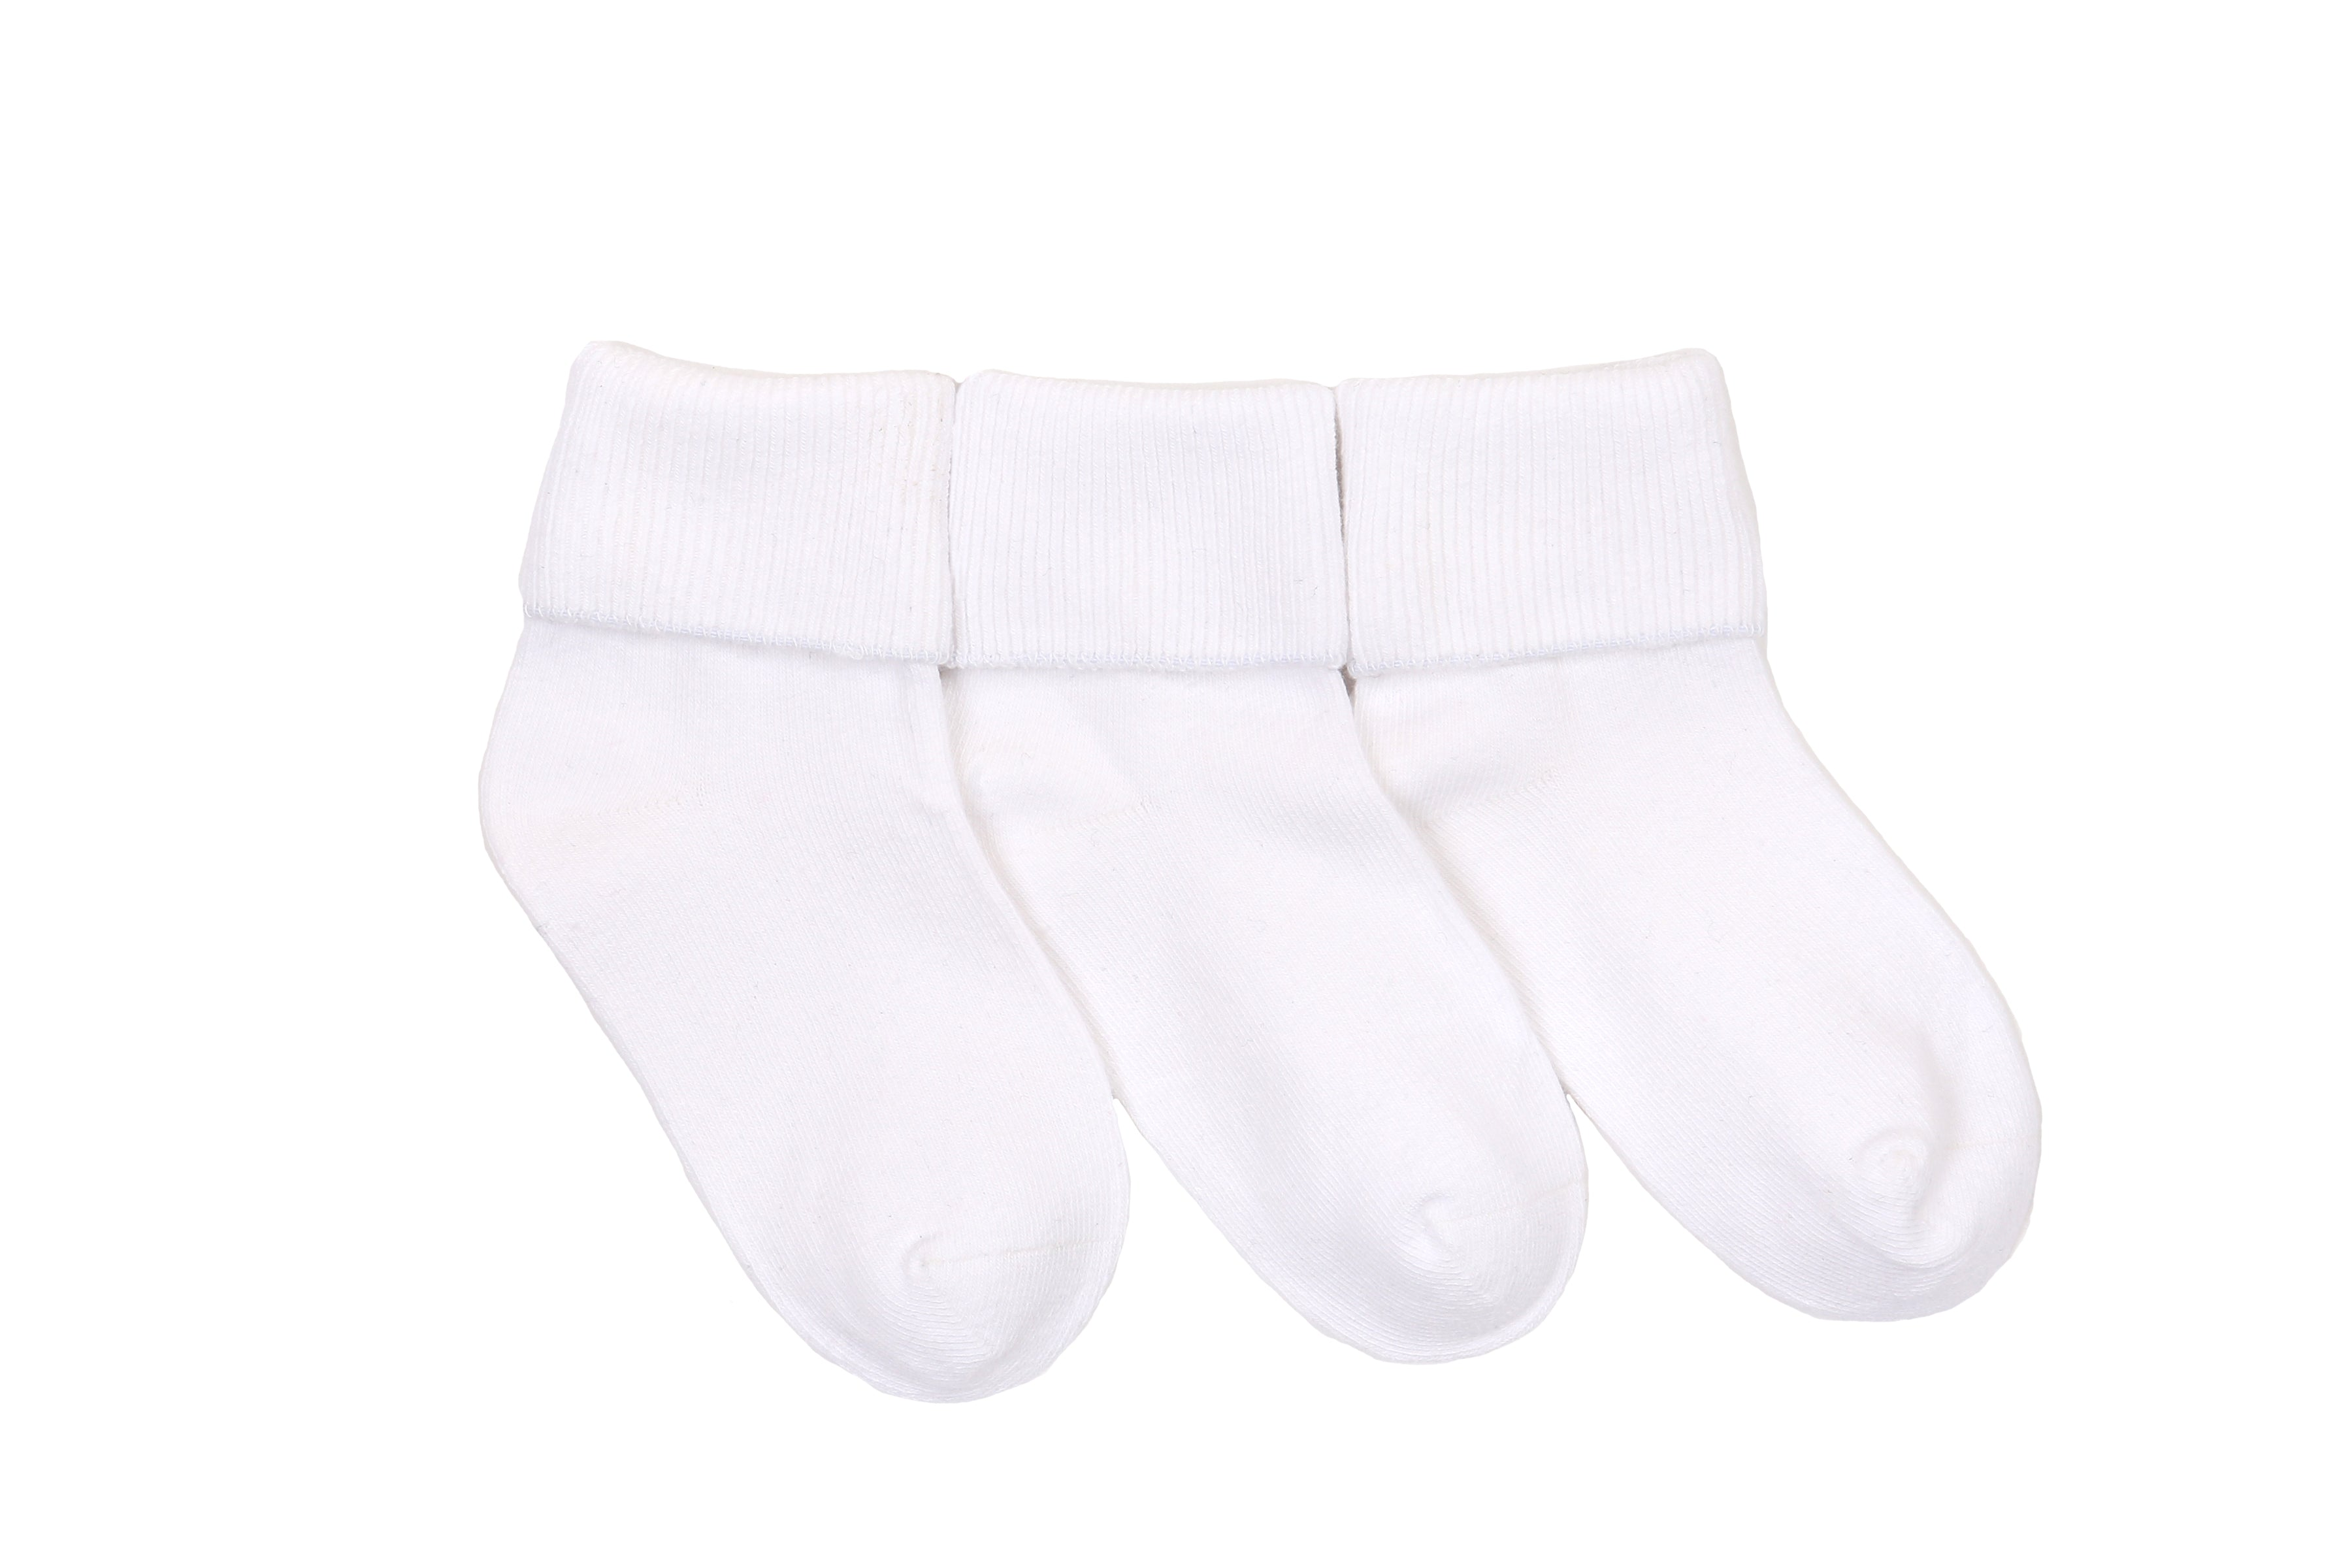 Stride Rite Kimberly Turncuff Socks - 3 pack